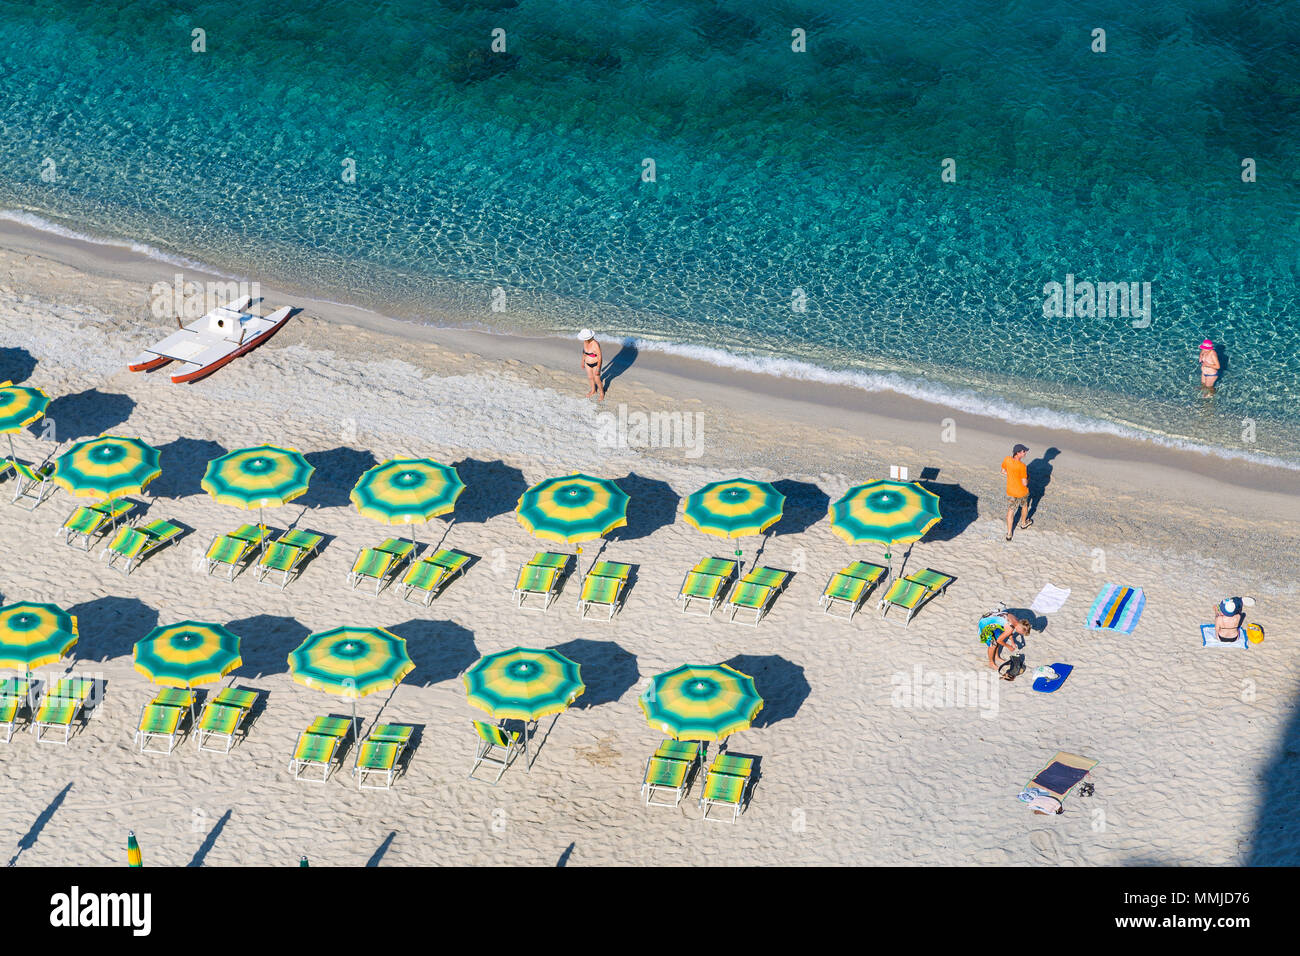 Beach in Tropea, Calabria, Italy - Stock Image